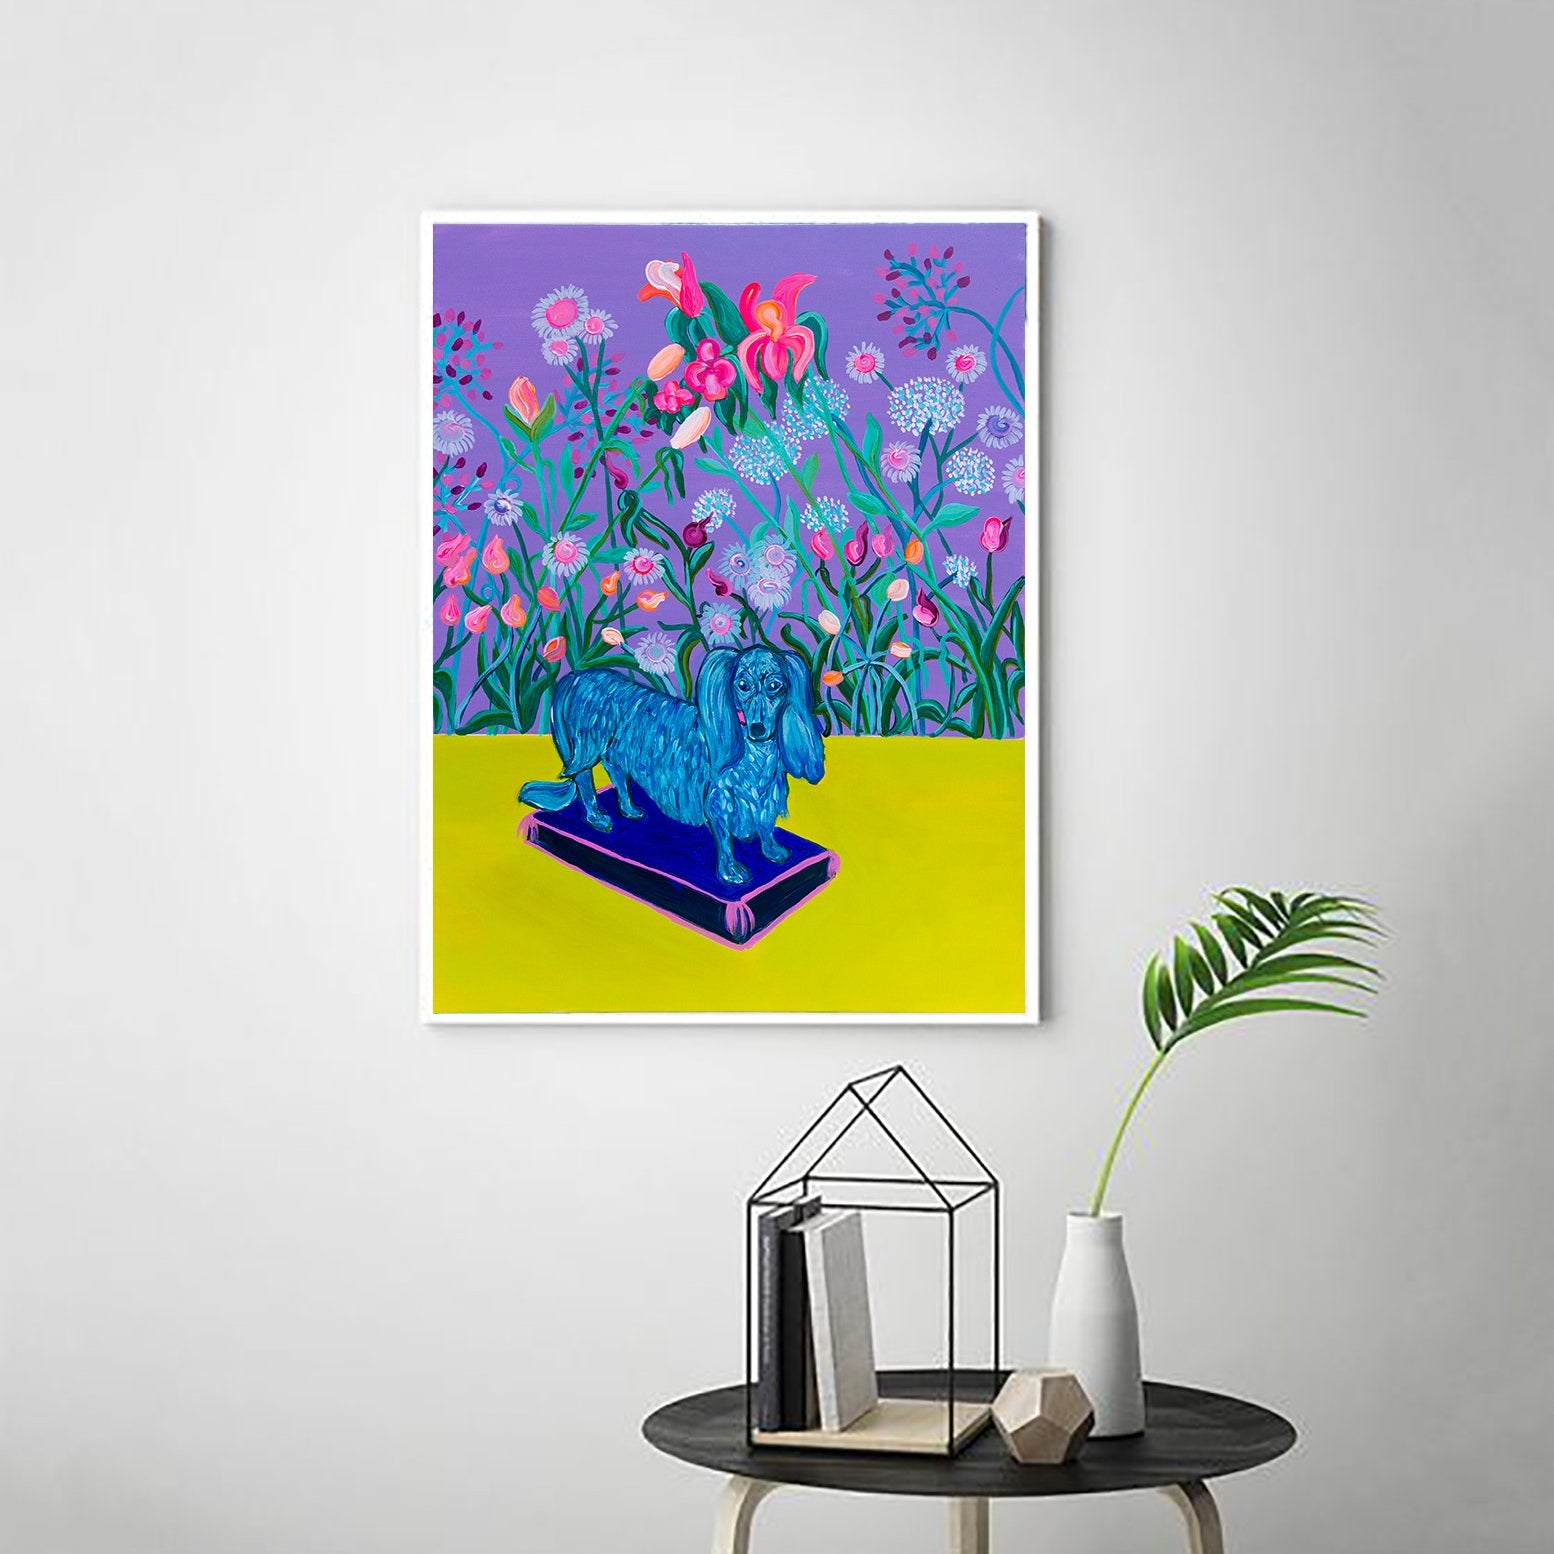 Colourful Dog Art Print - Davina Shefet Art Store